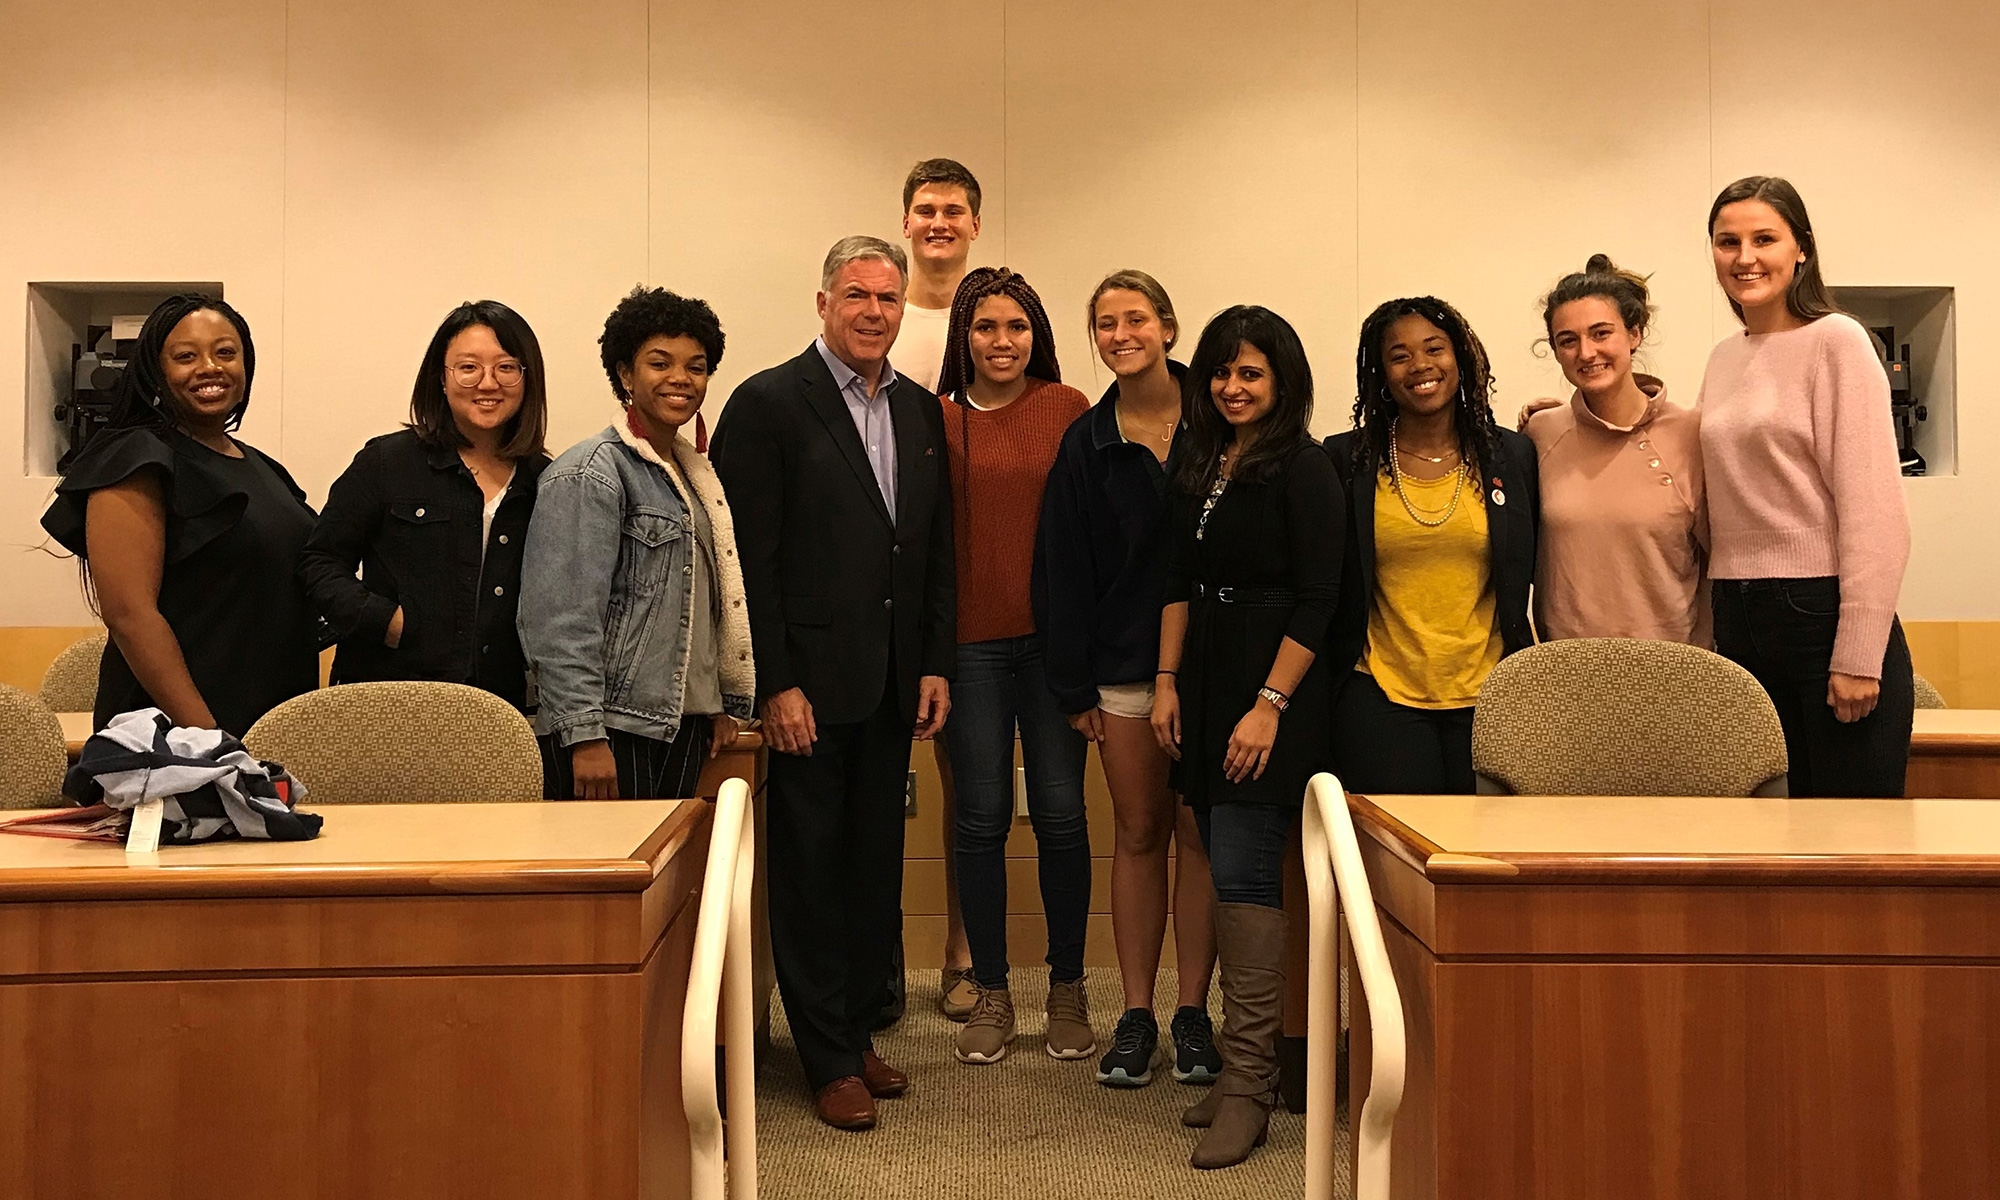 Matthew Harrington '84 and Monisha Mukhija '11 with students